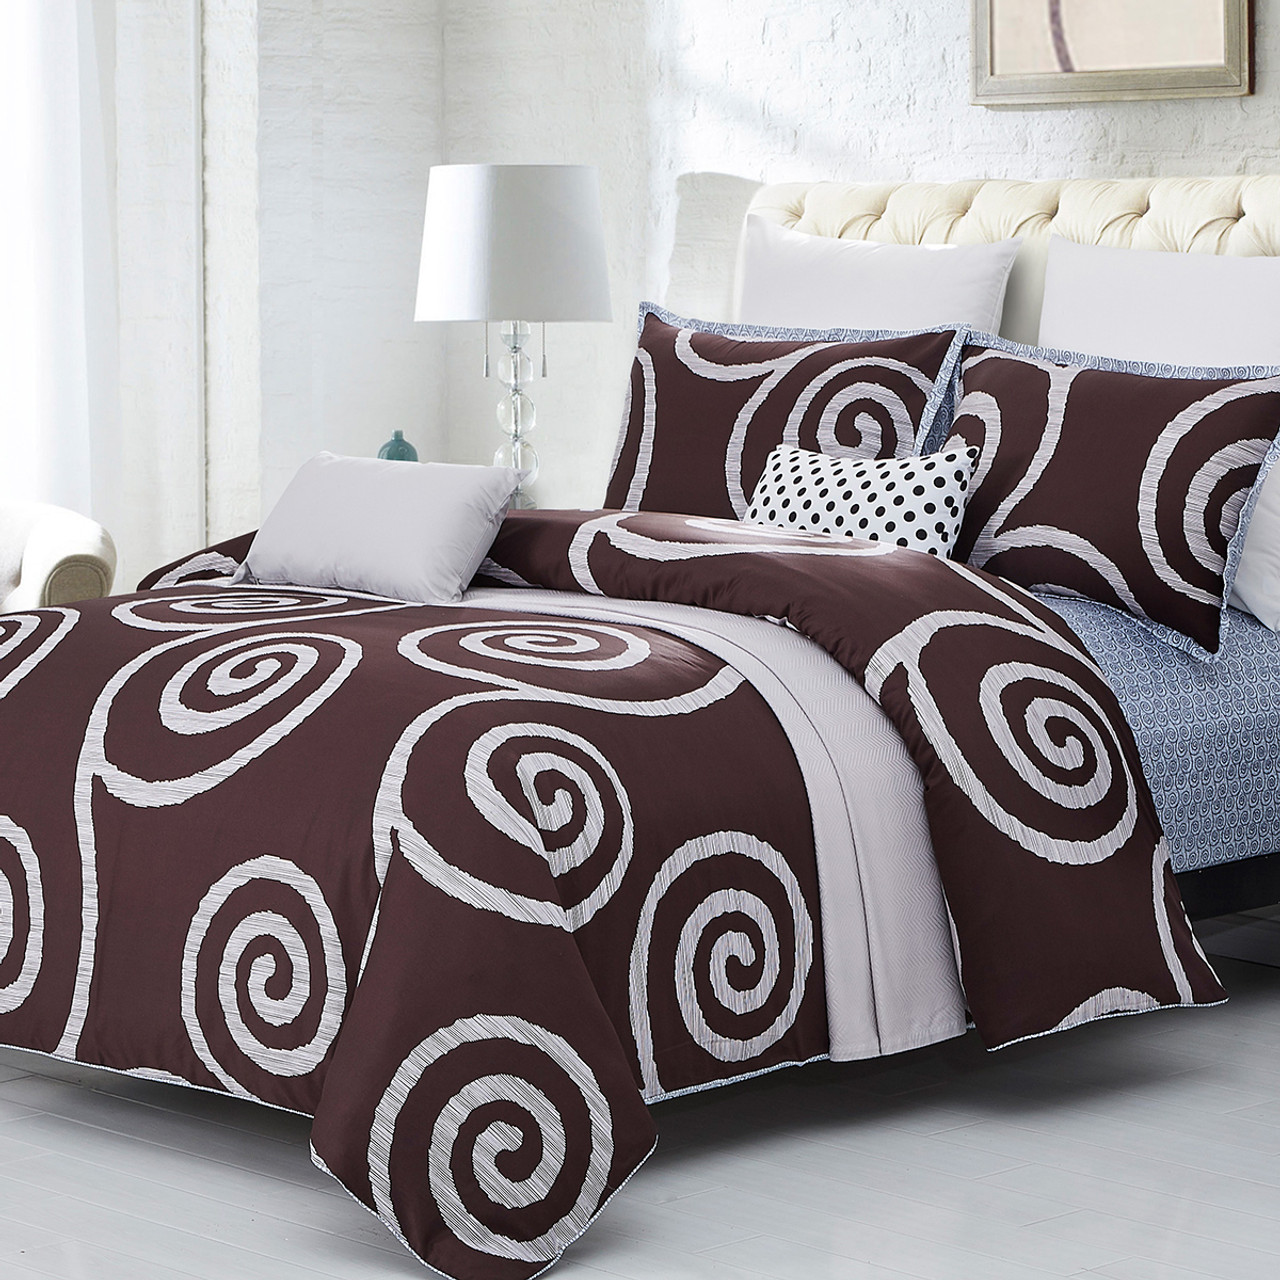 100/% Cotton Twin Queen King Size Decorative Duvet Cover with Pillow Cover-7284